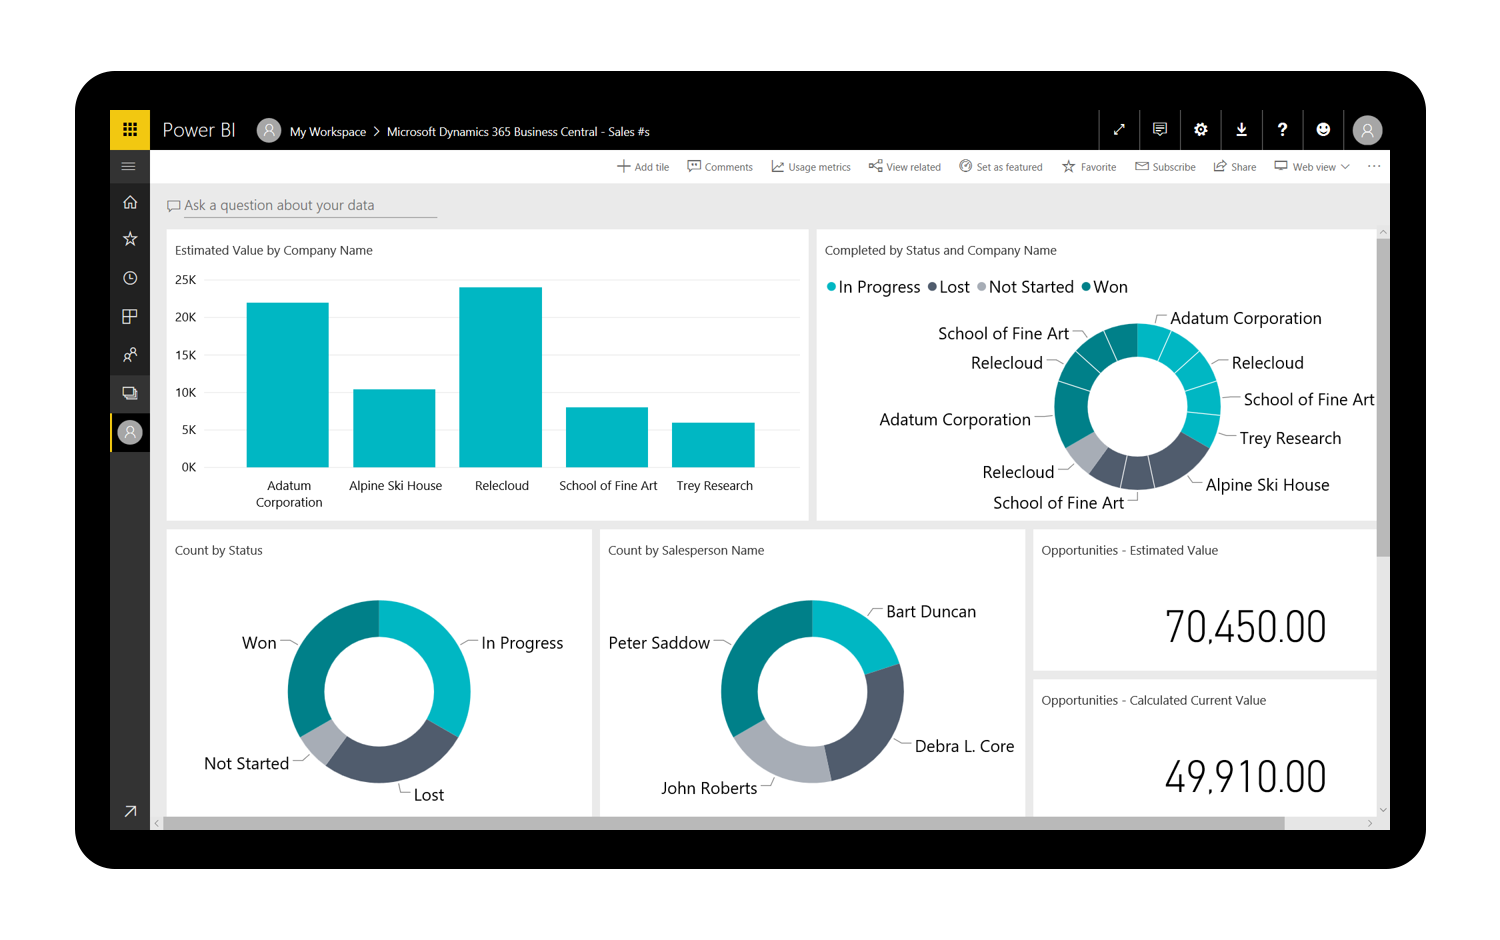 Power BI in Business Central